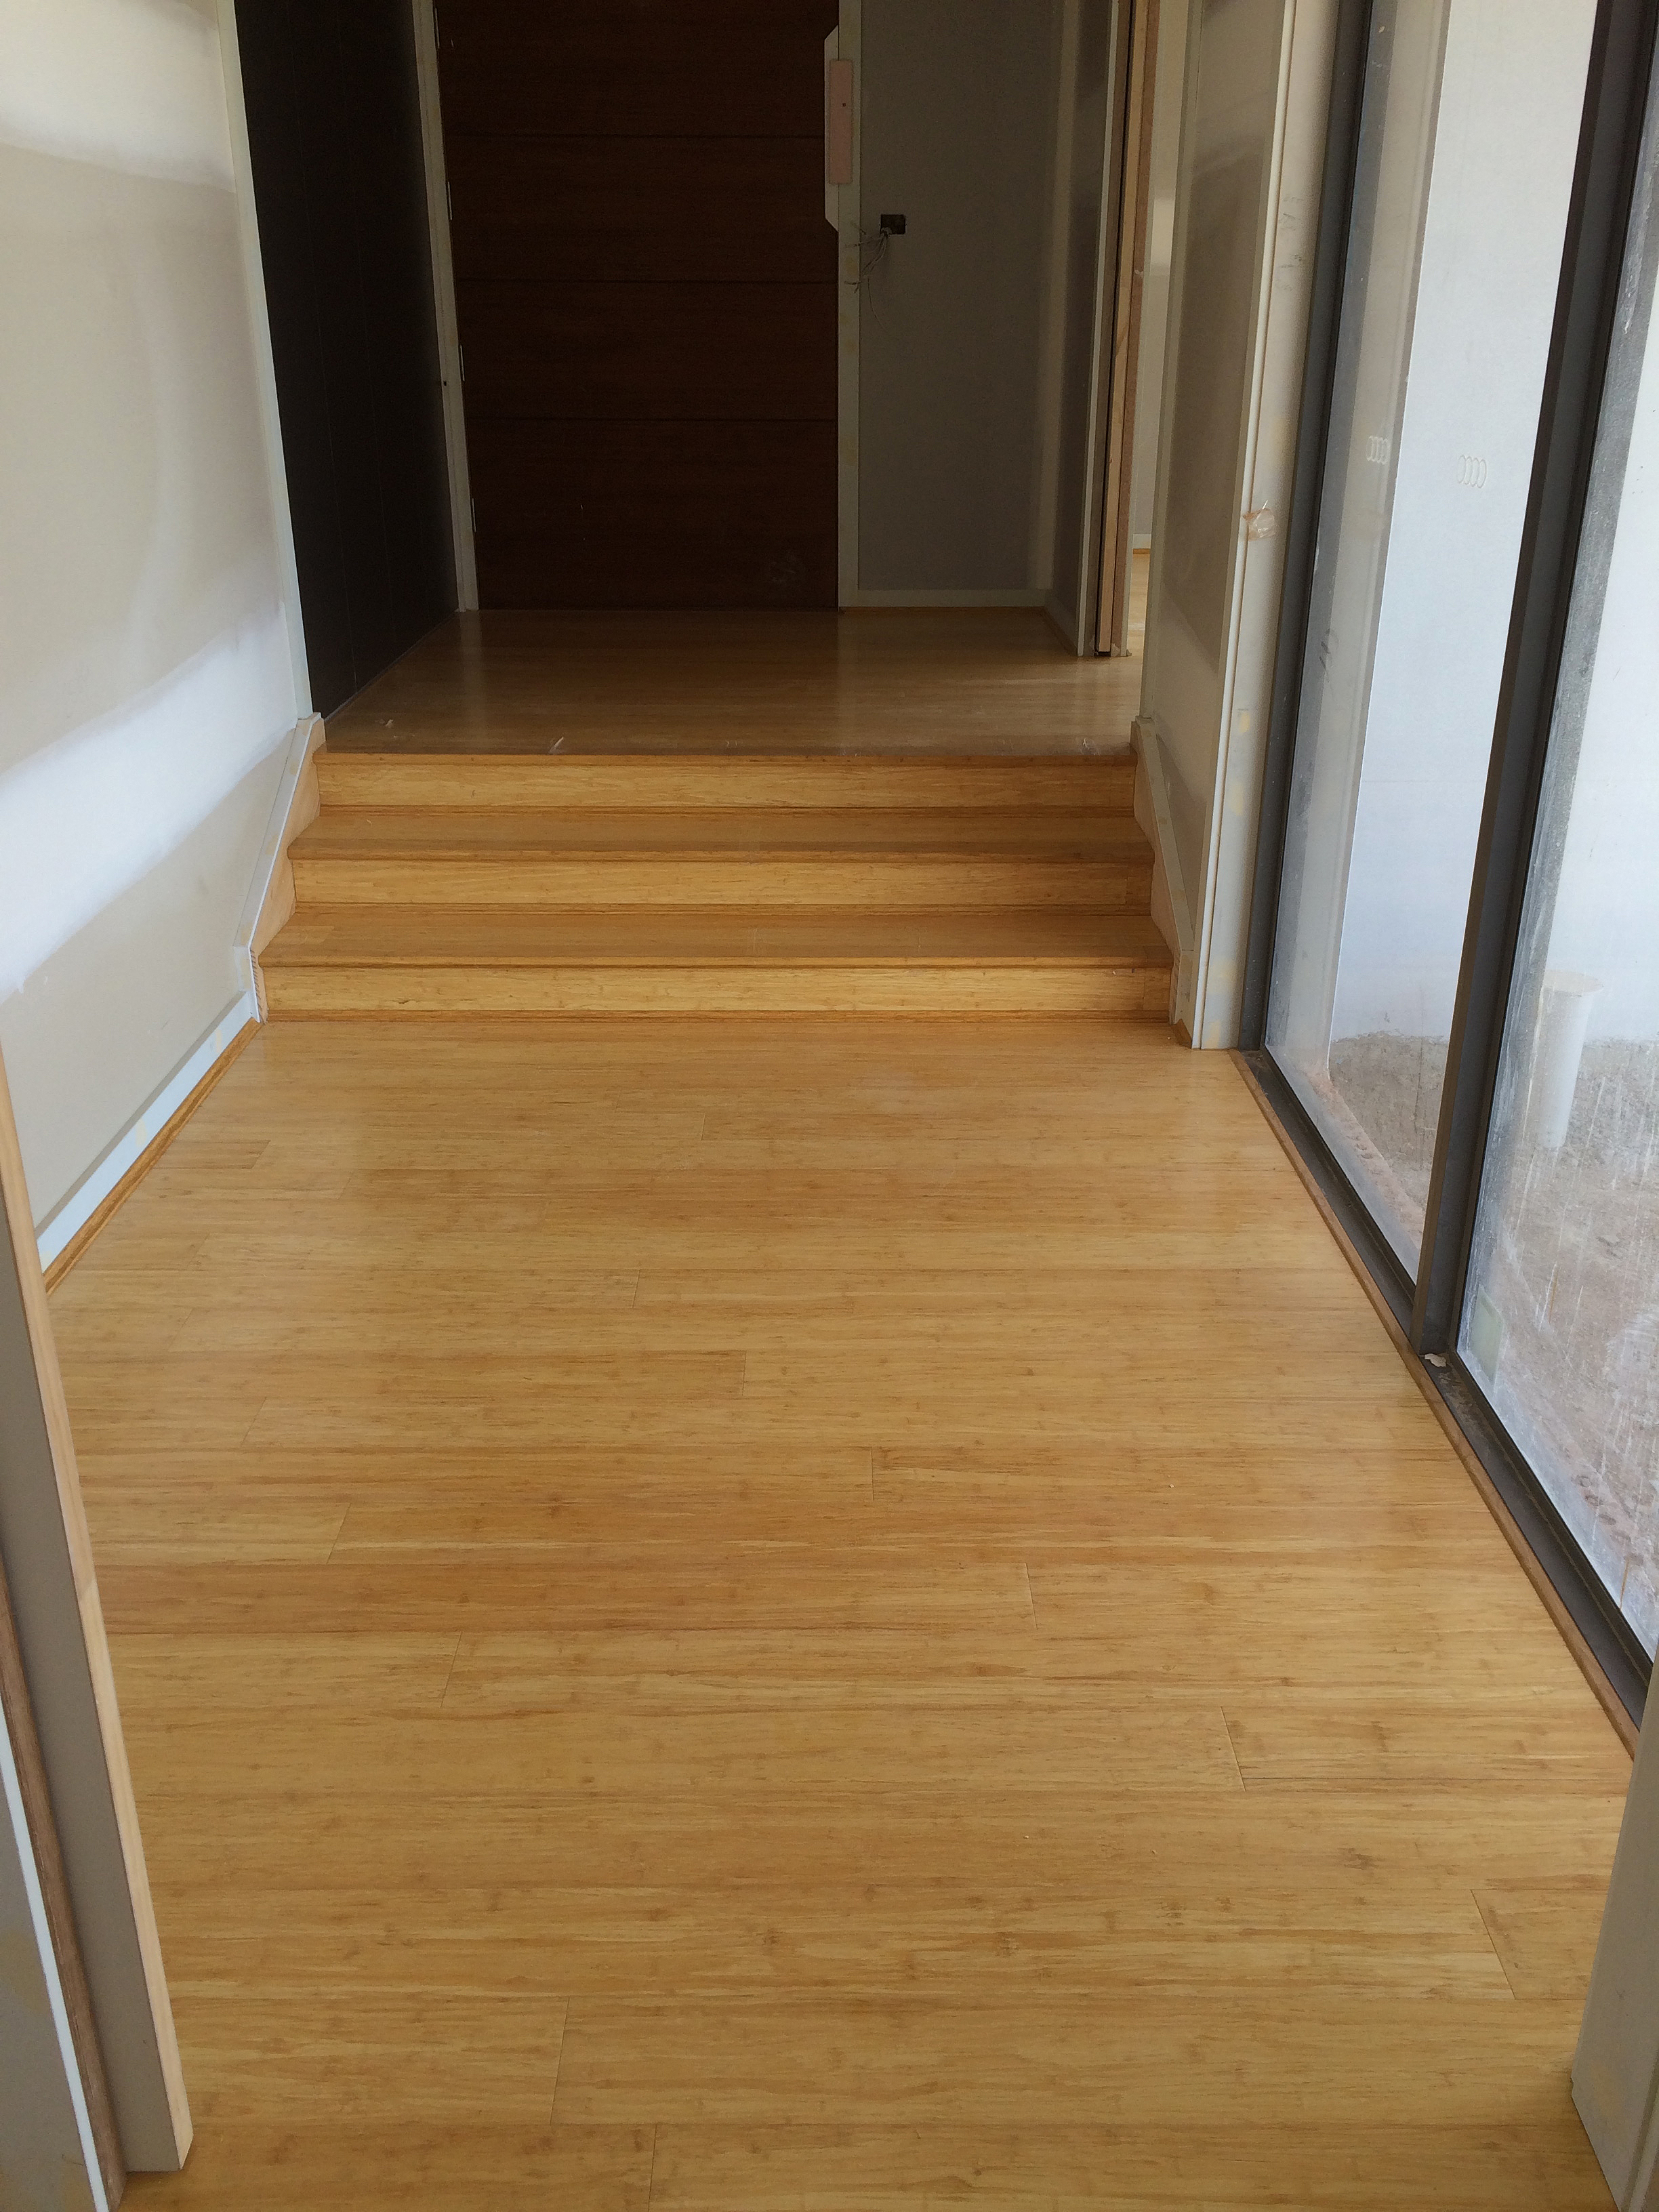 for refinishing floor m flooring services hardwood contractors i homeowners installation and flatout g